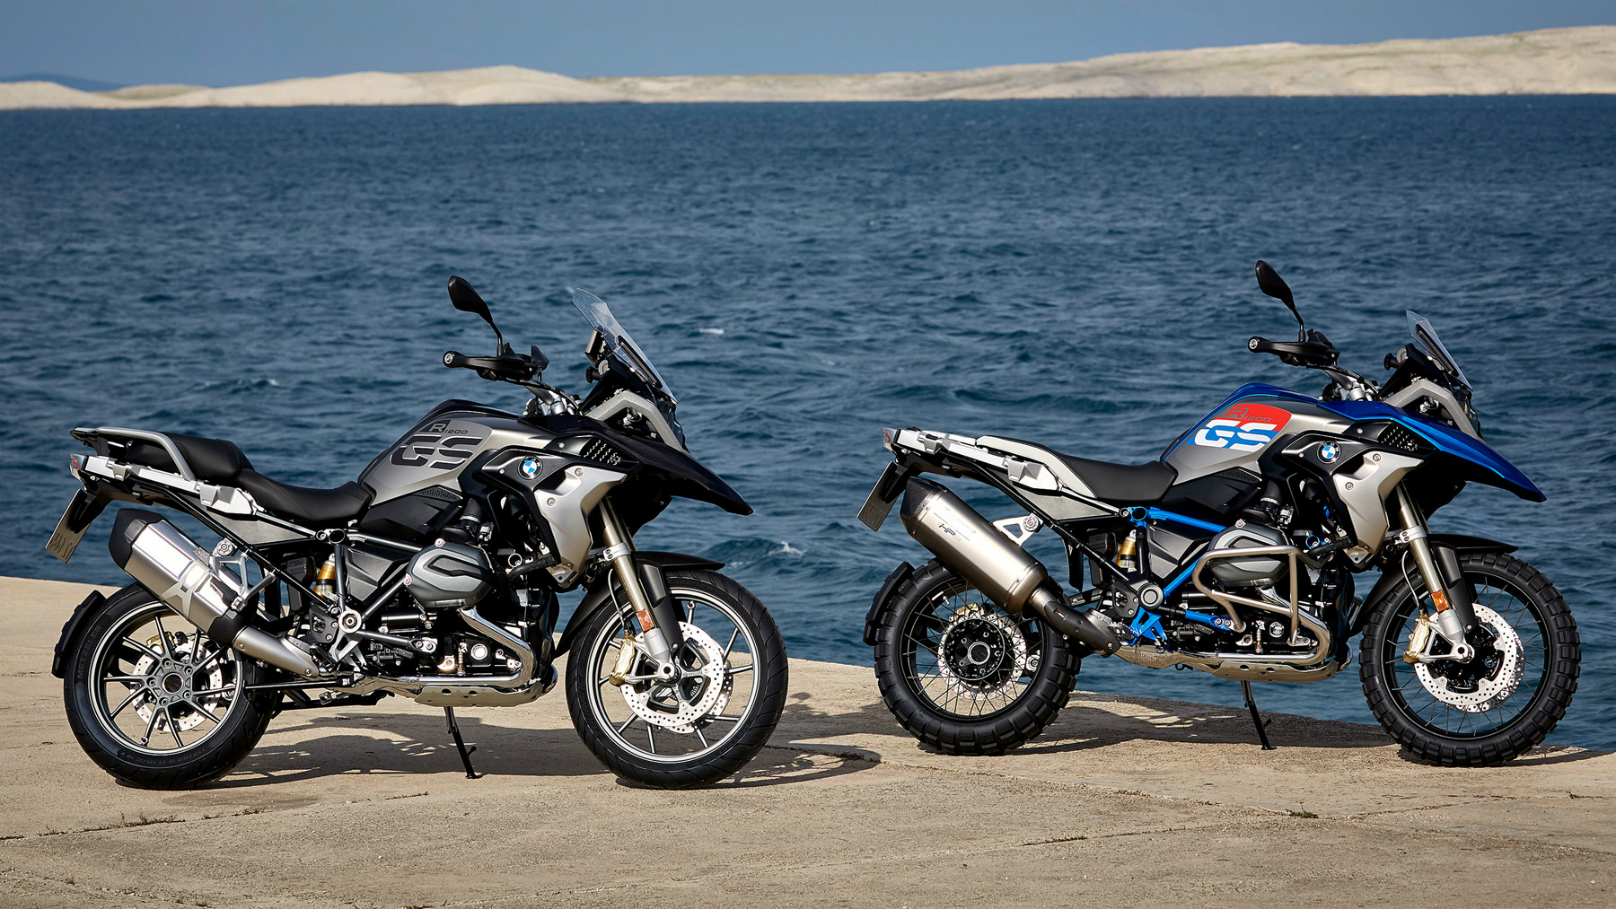 2017 BMW R1200GS Review: